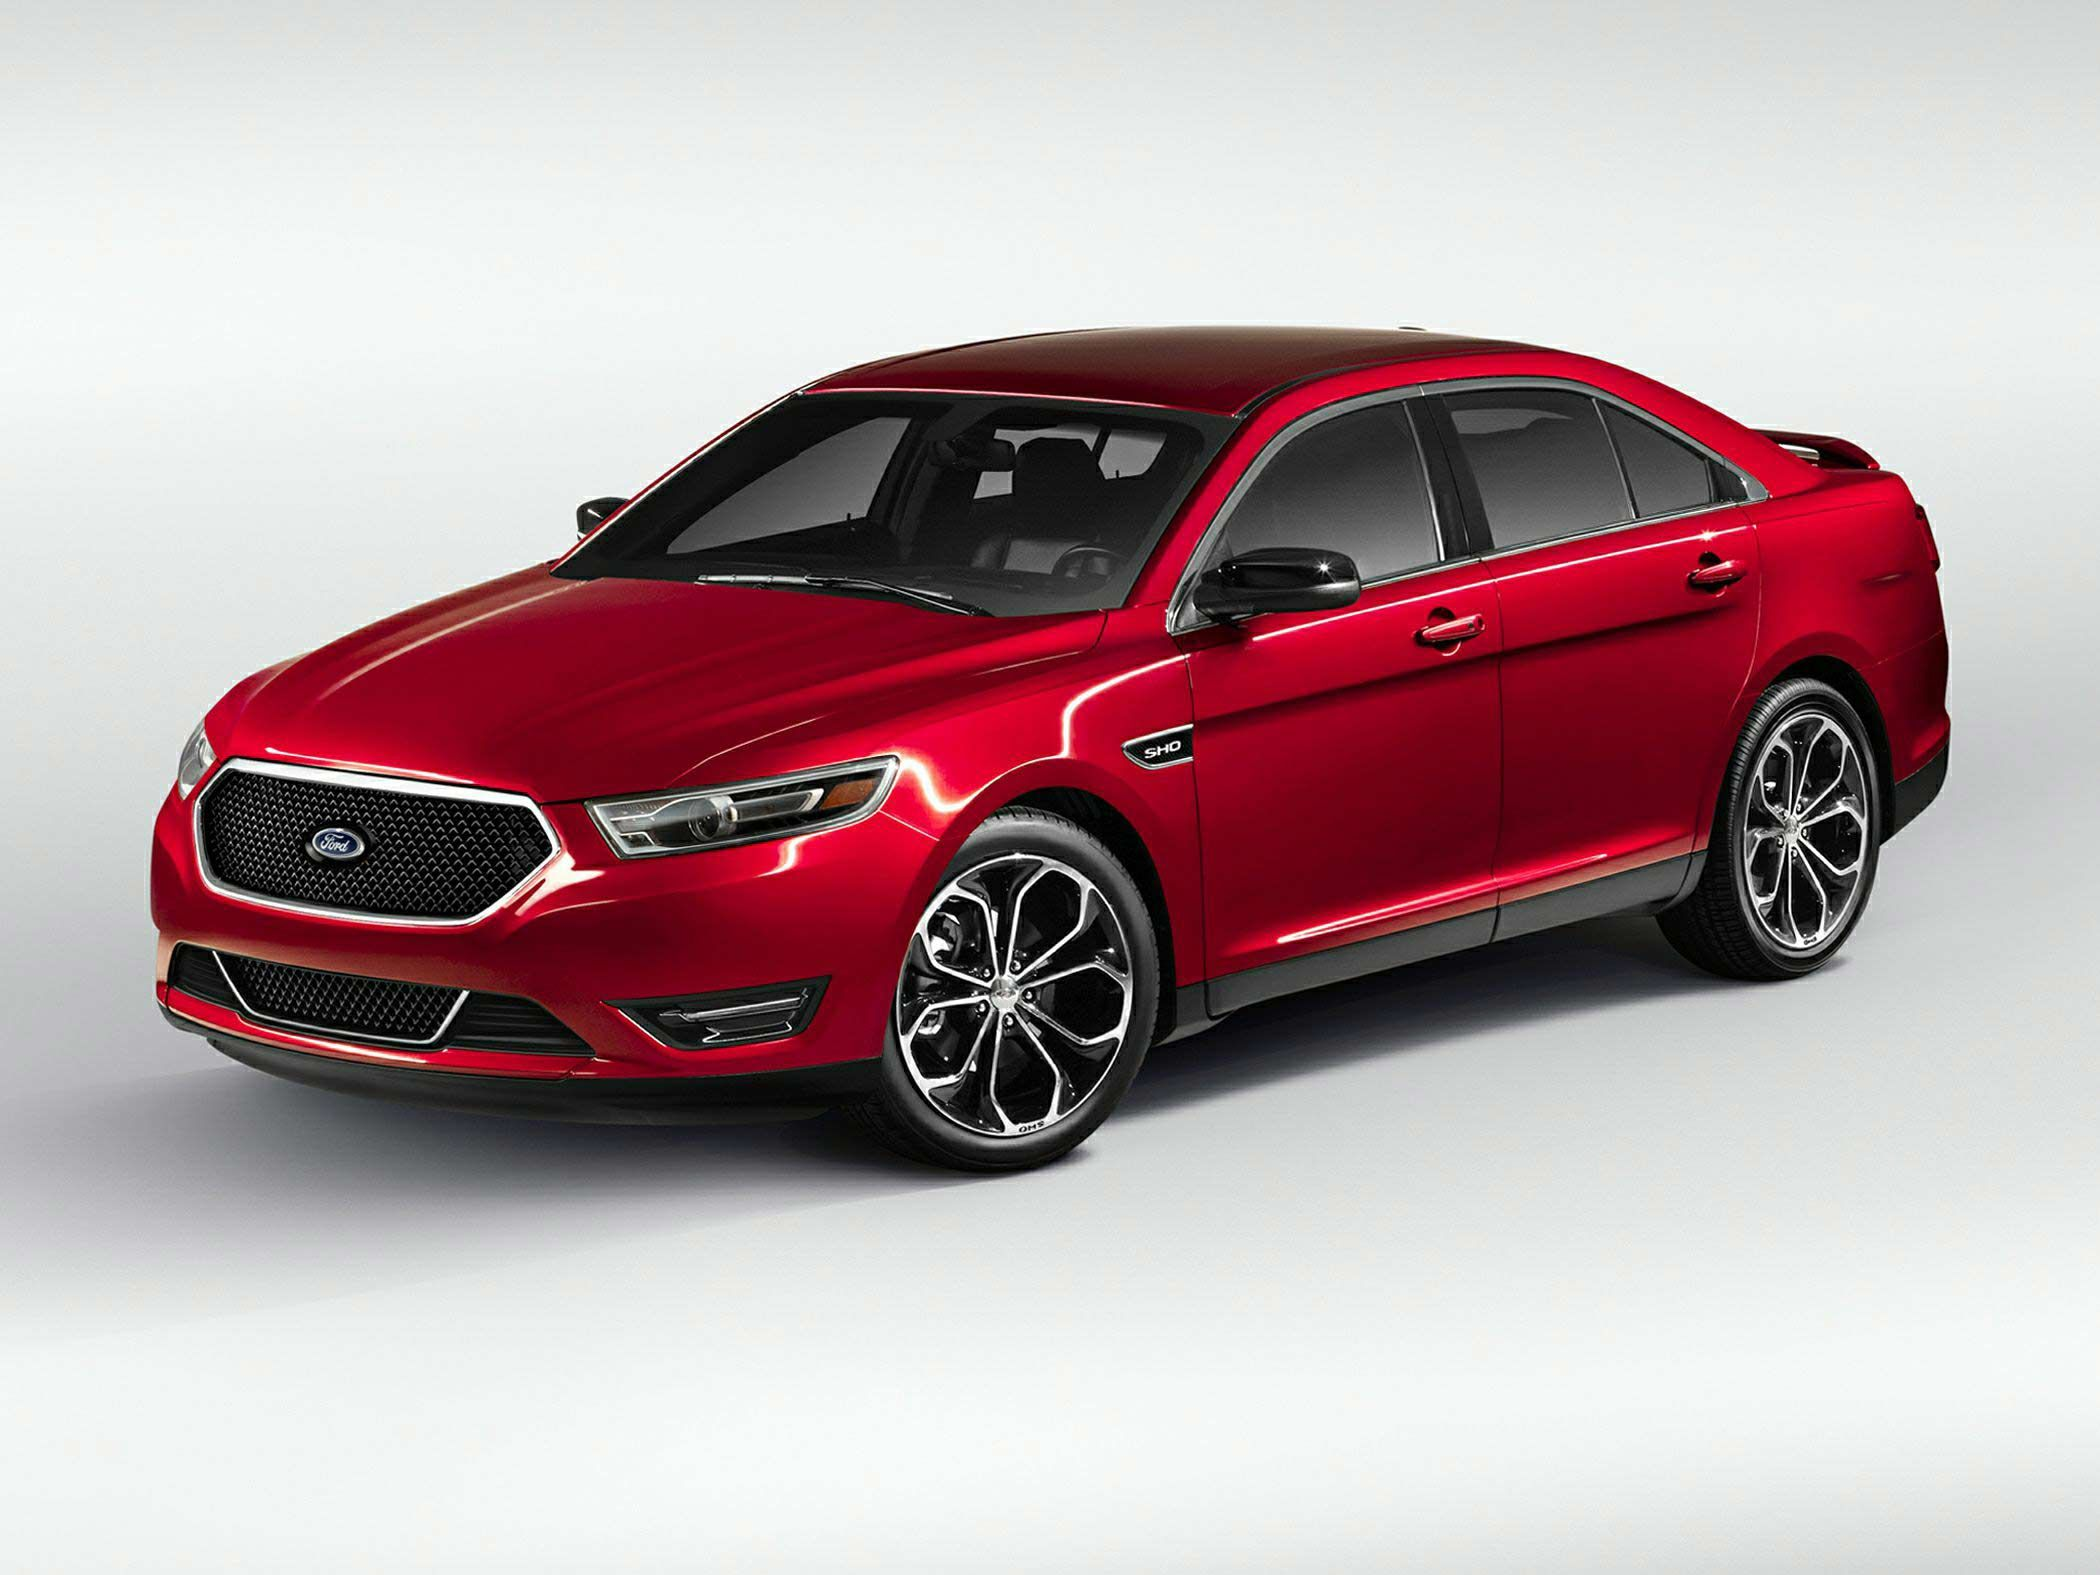 Best 20 2014 ford taurus ideas on pinterest ford taurus sho taurus ford and ford taurus ltd